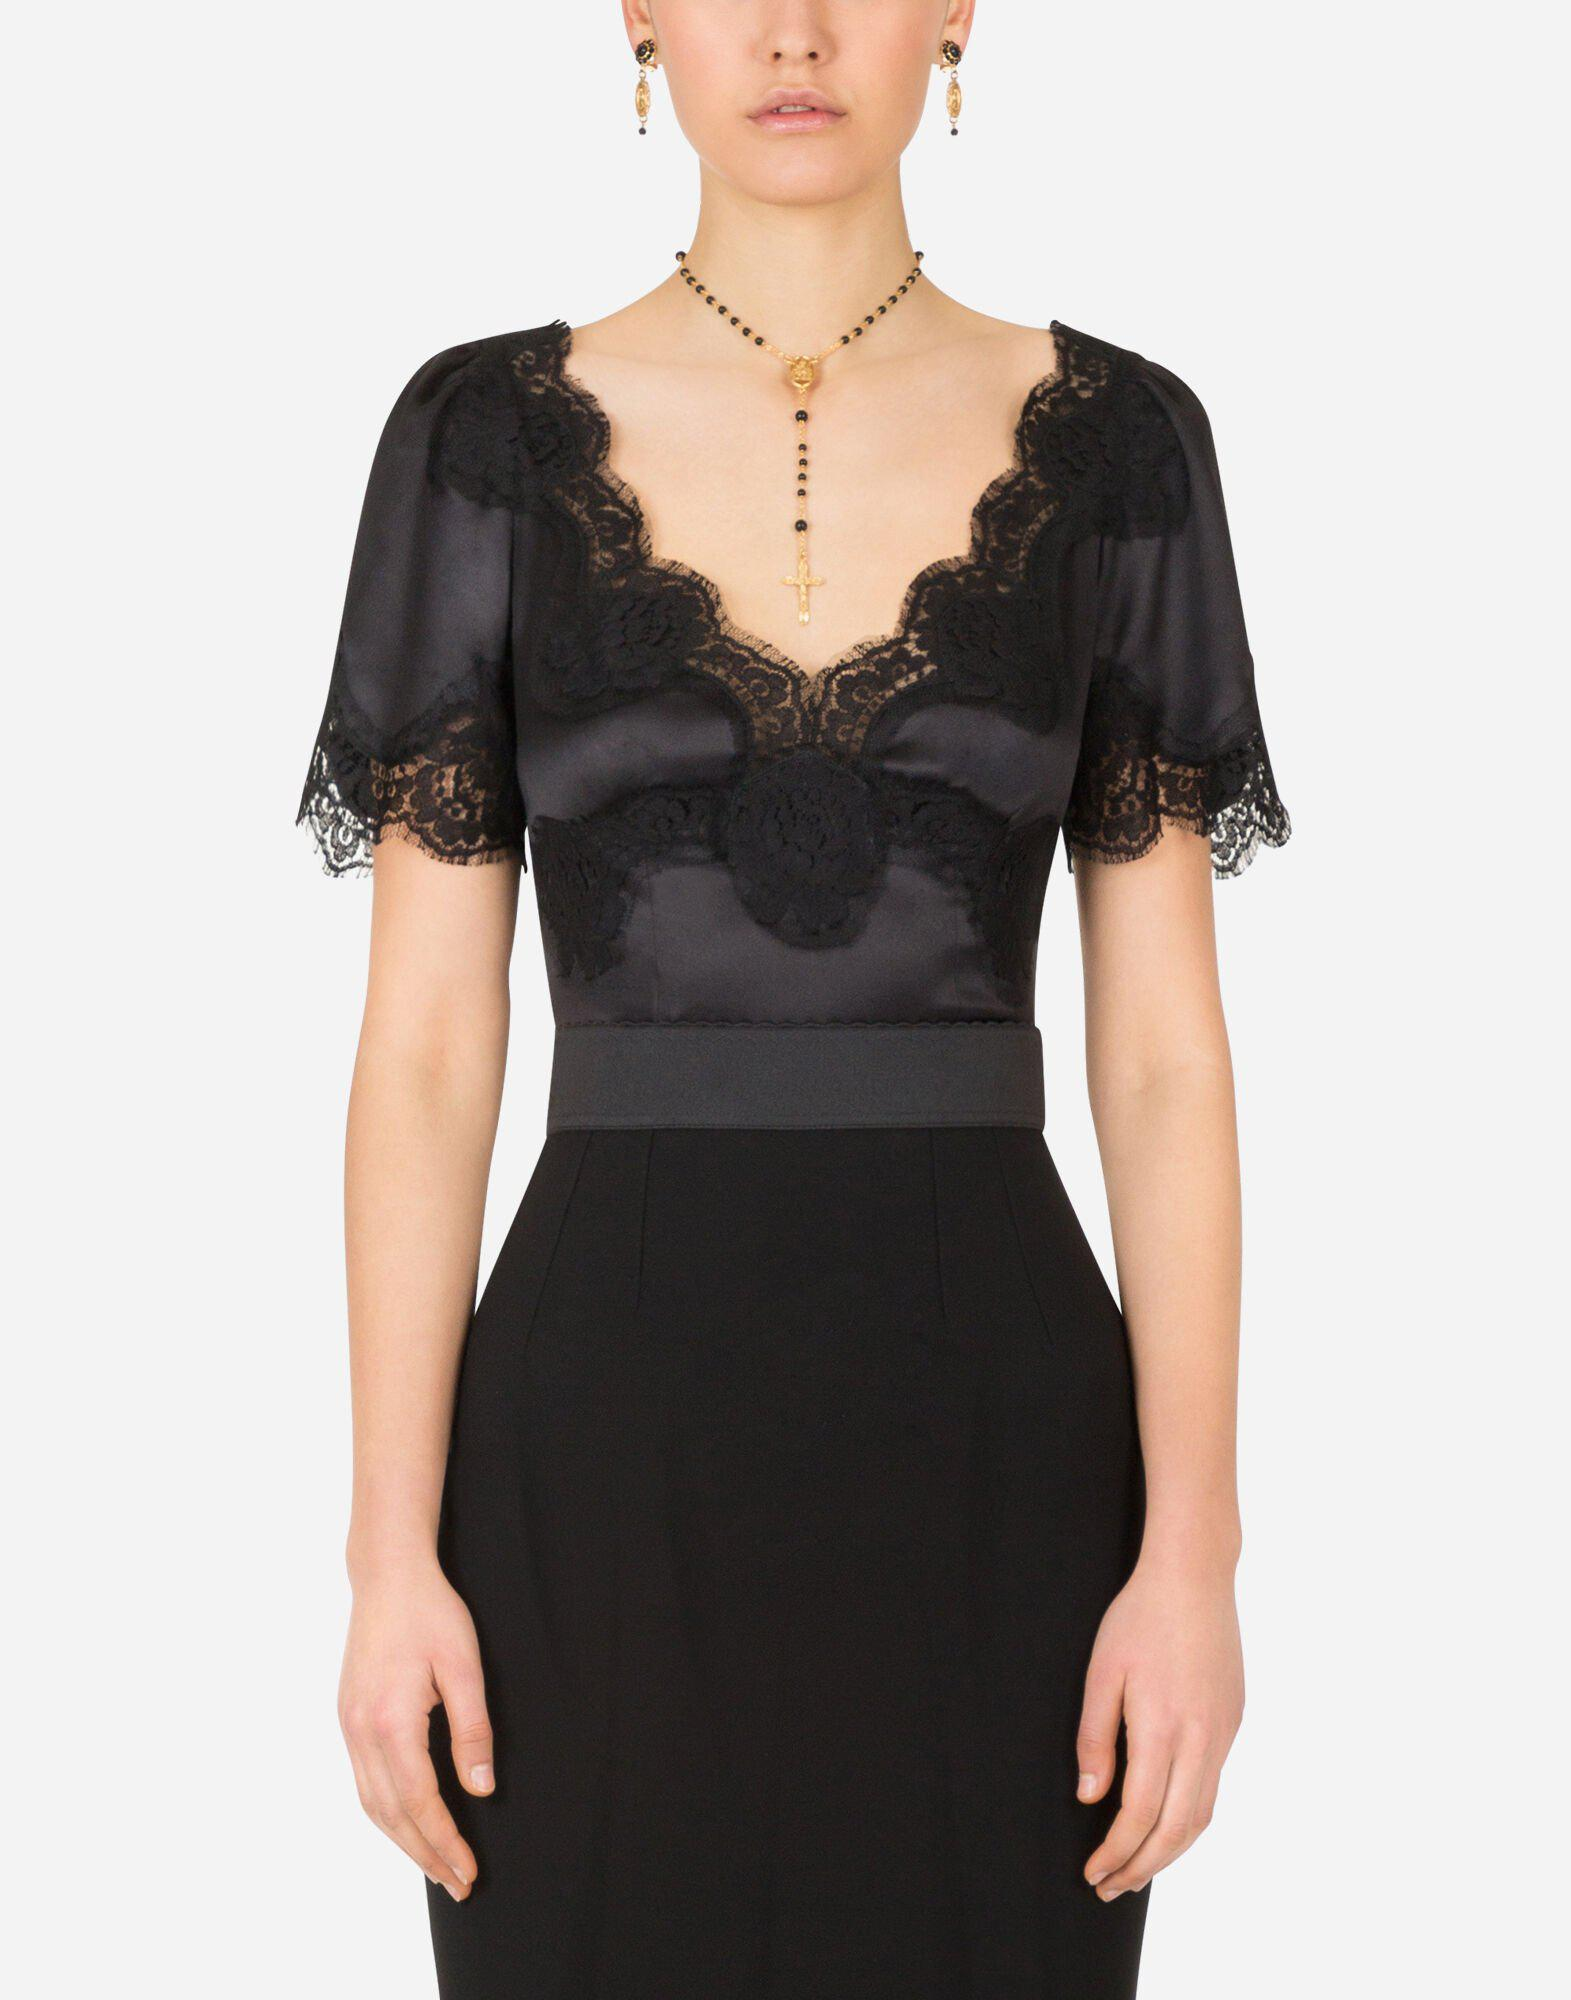 Satin top with lace details